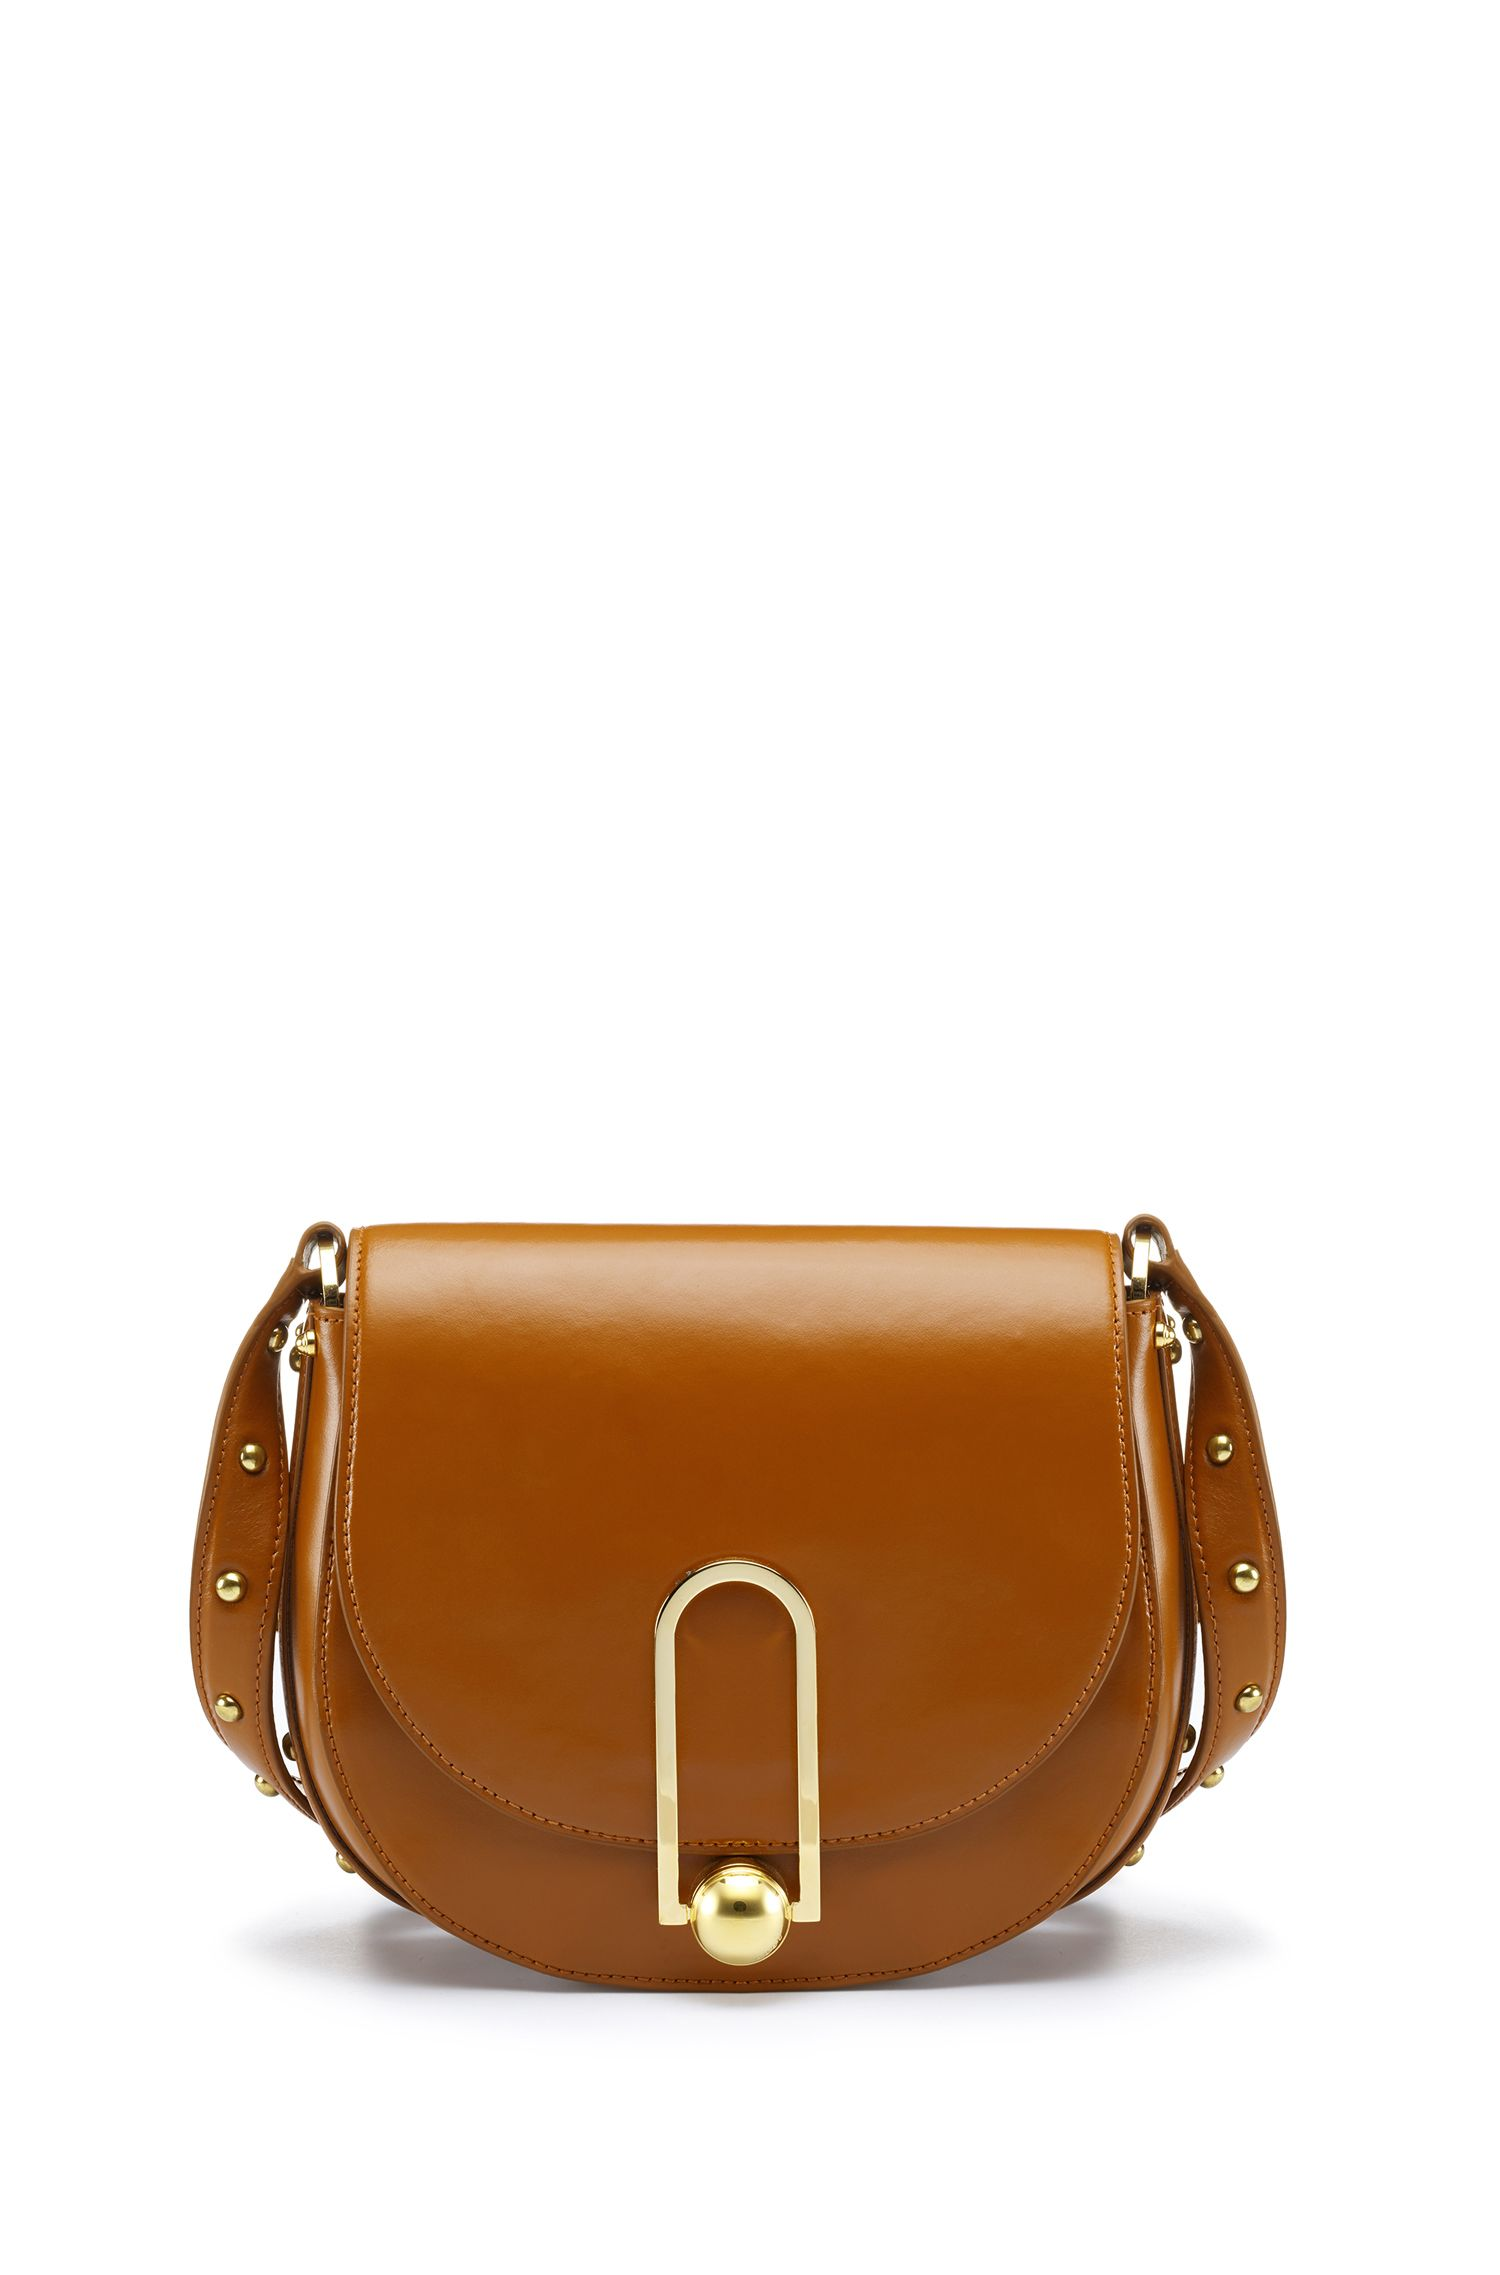 Smooth leather saddle bag with stud detailing